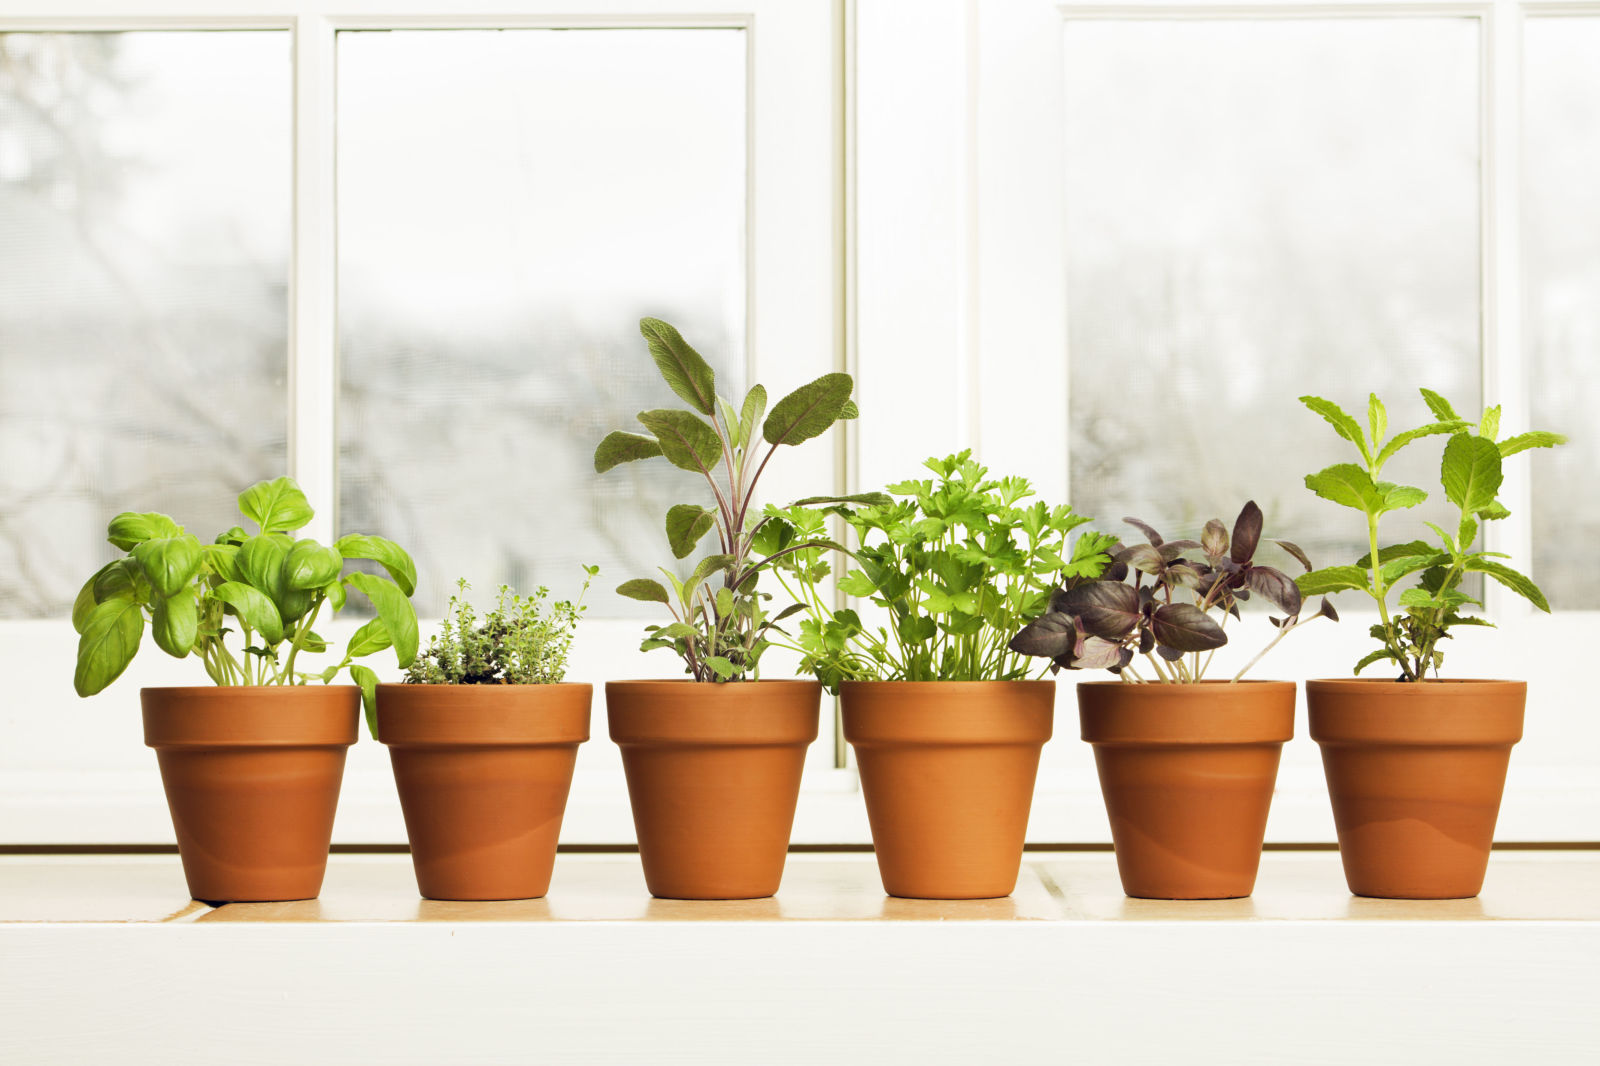 Best Pots For Indoor Herbs How To Grow Herbs And Spices Indoors Clickhowto